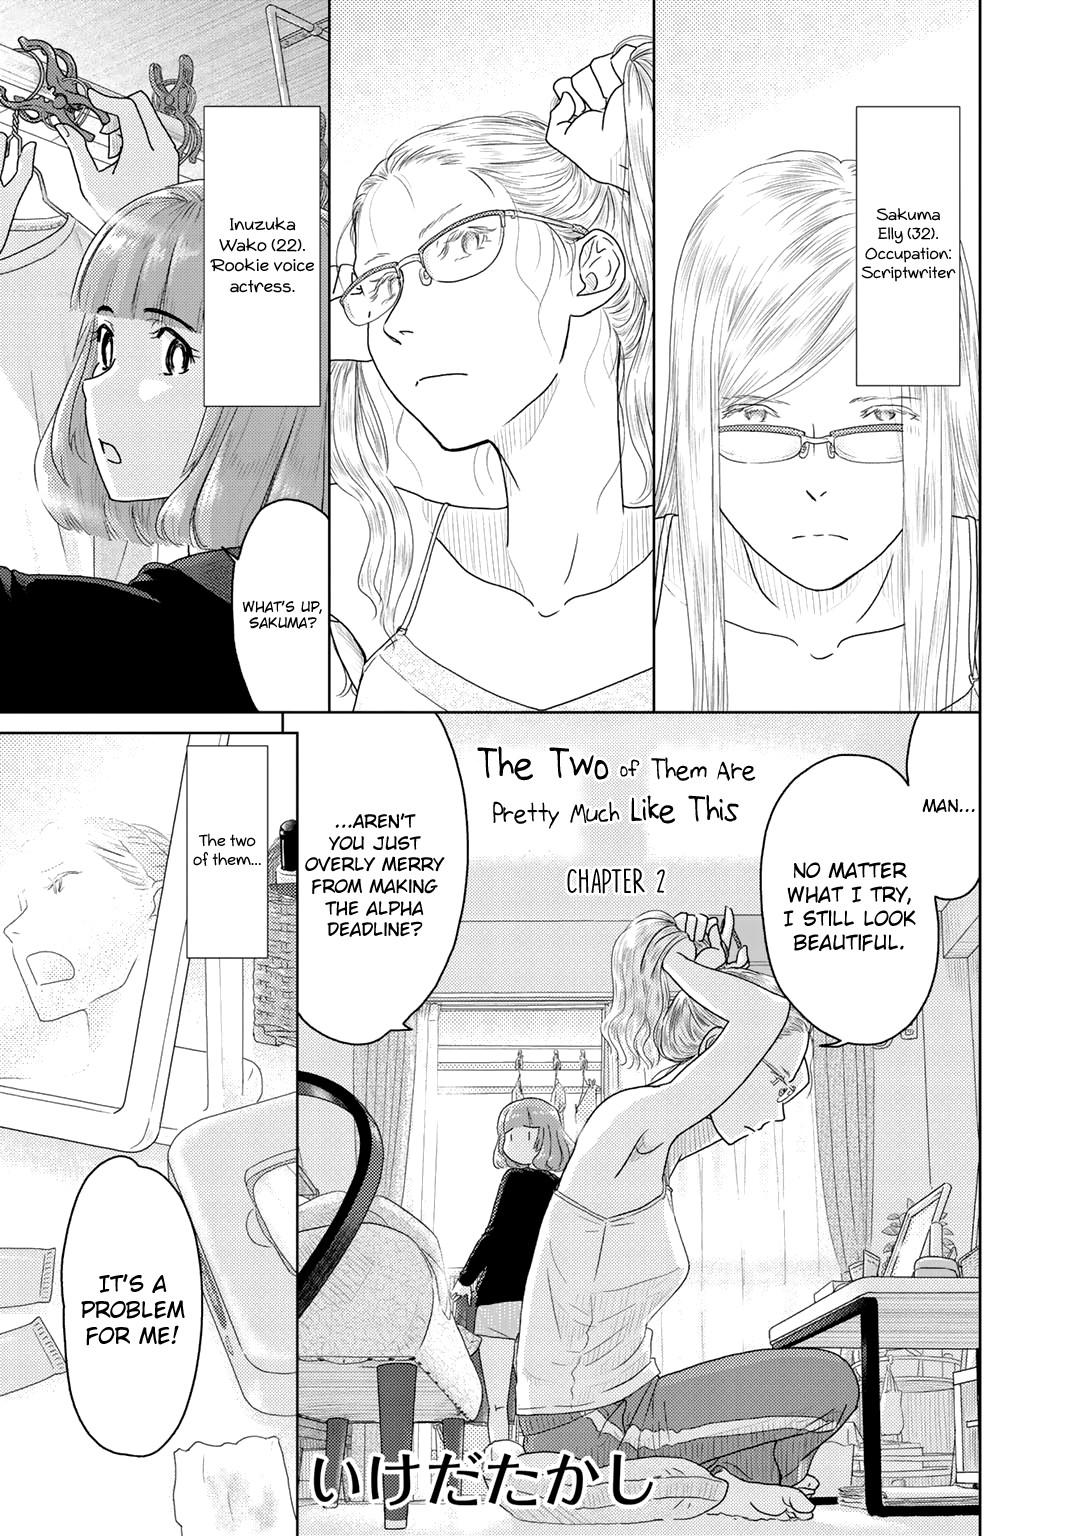 The Two Of Them Are Pretty Much Like This - chapter 2 - #1